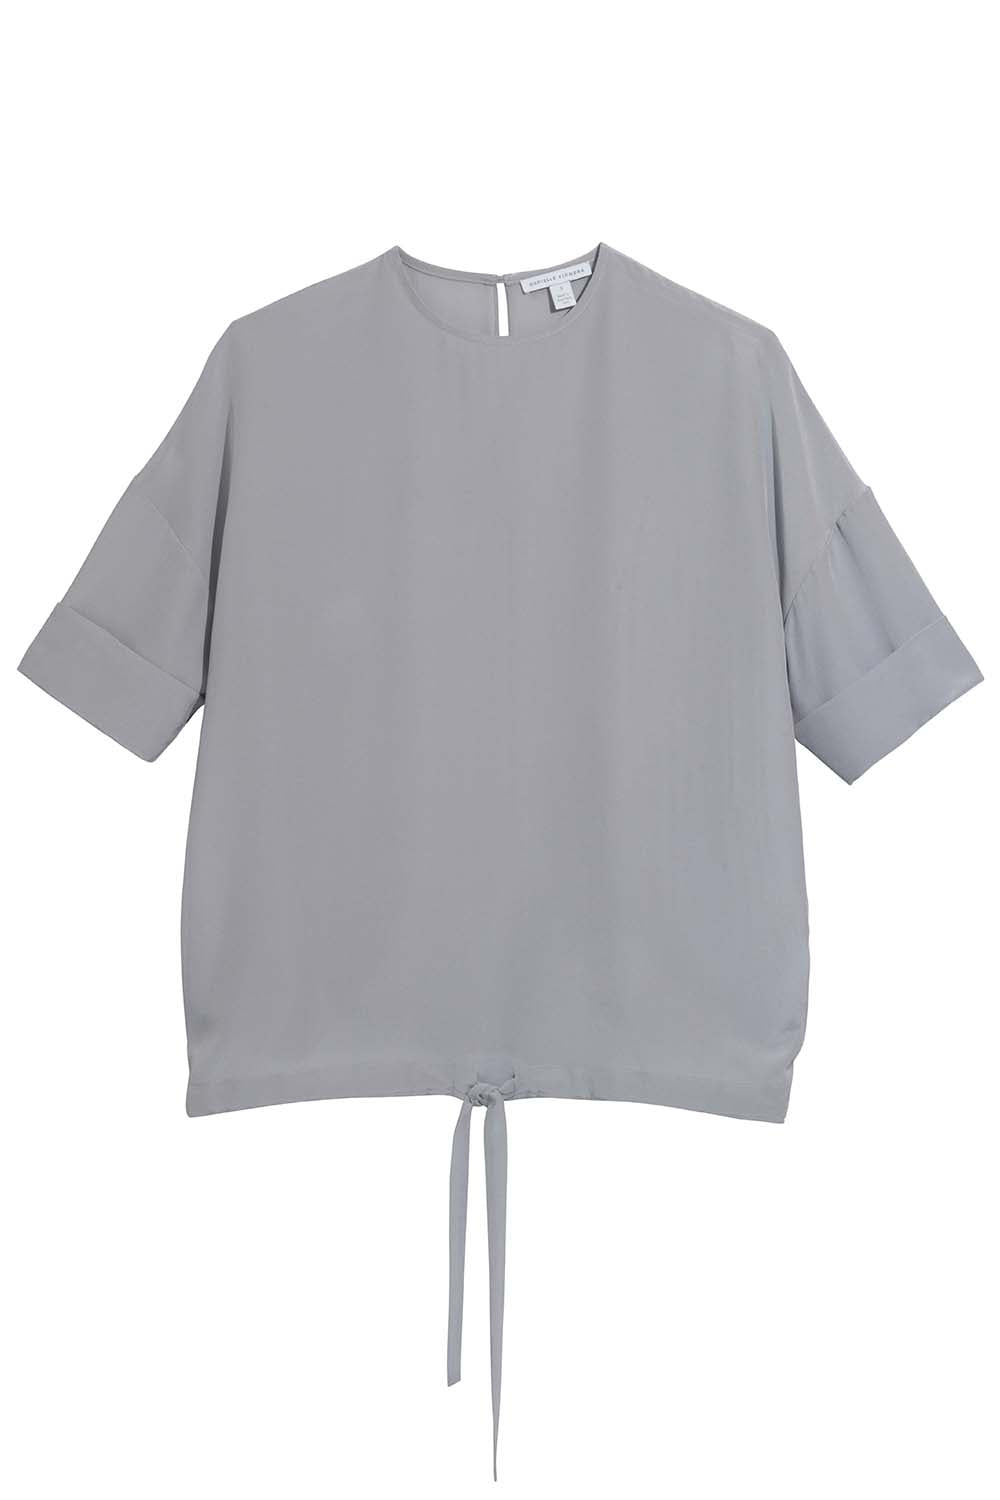 Calla Blouse in Grey